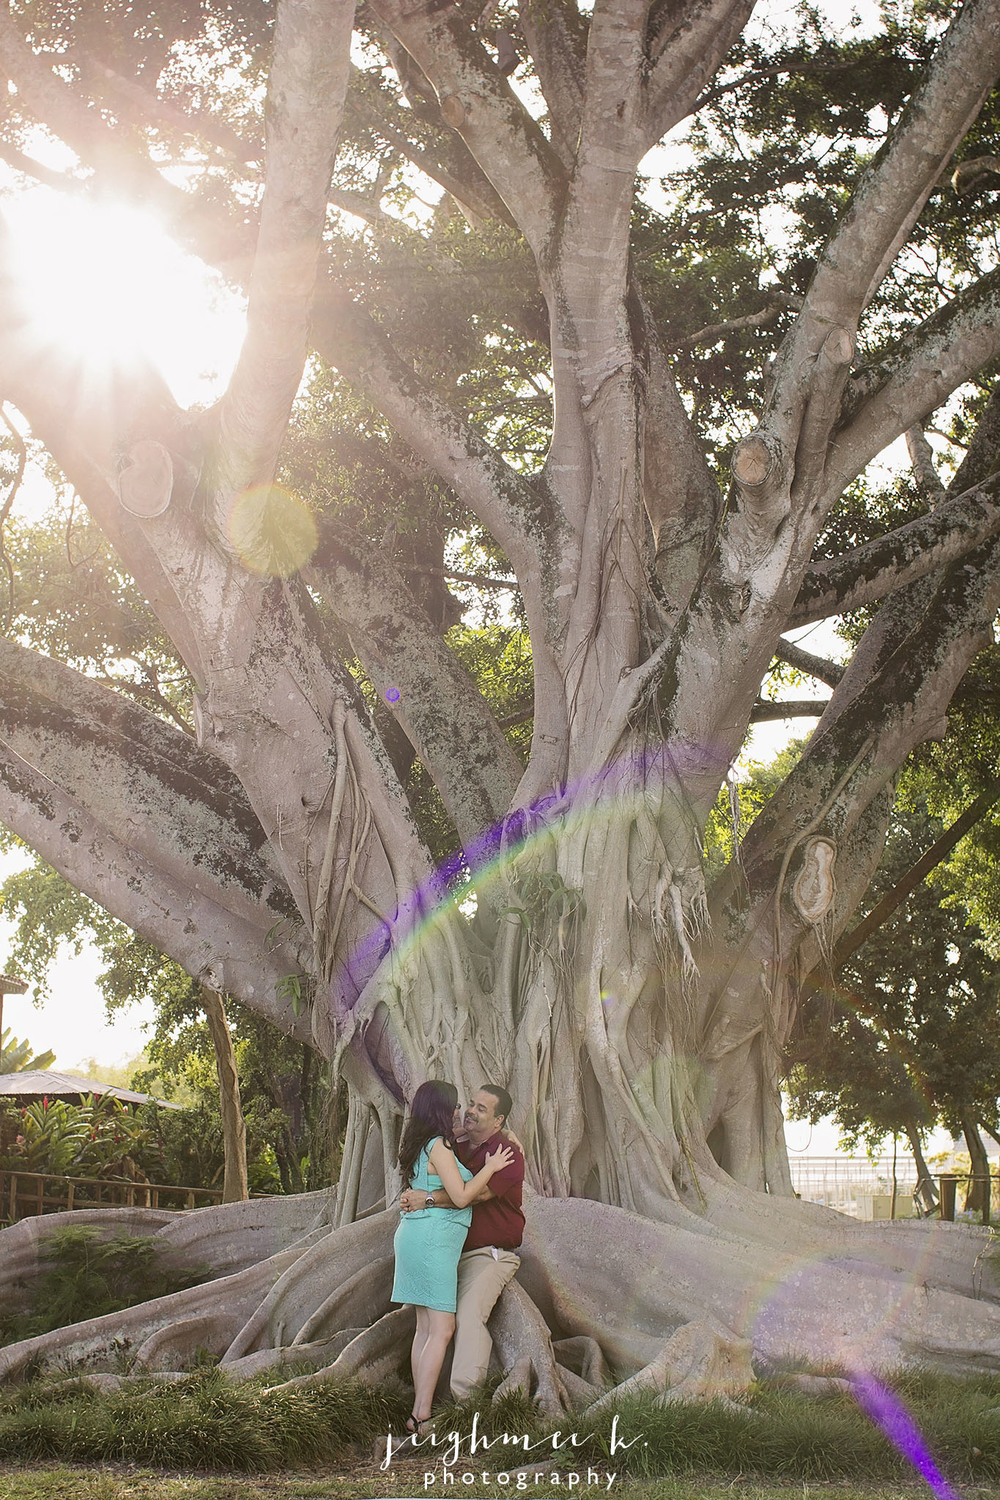 Caguas Botanical Garden Engagement Session 4 (1).jpg